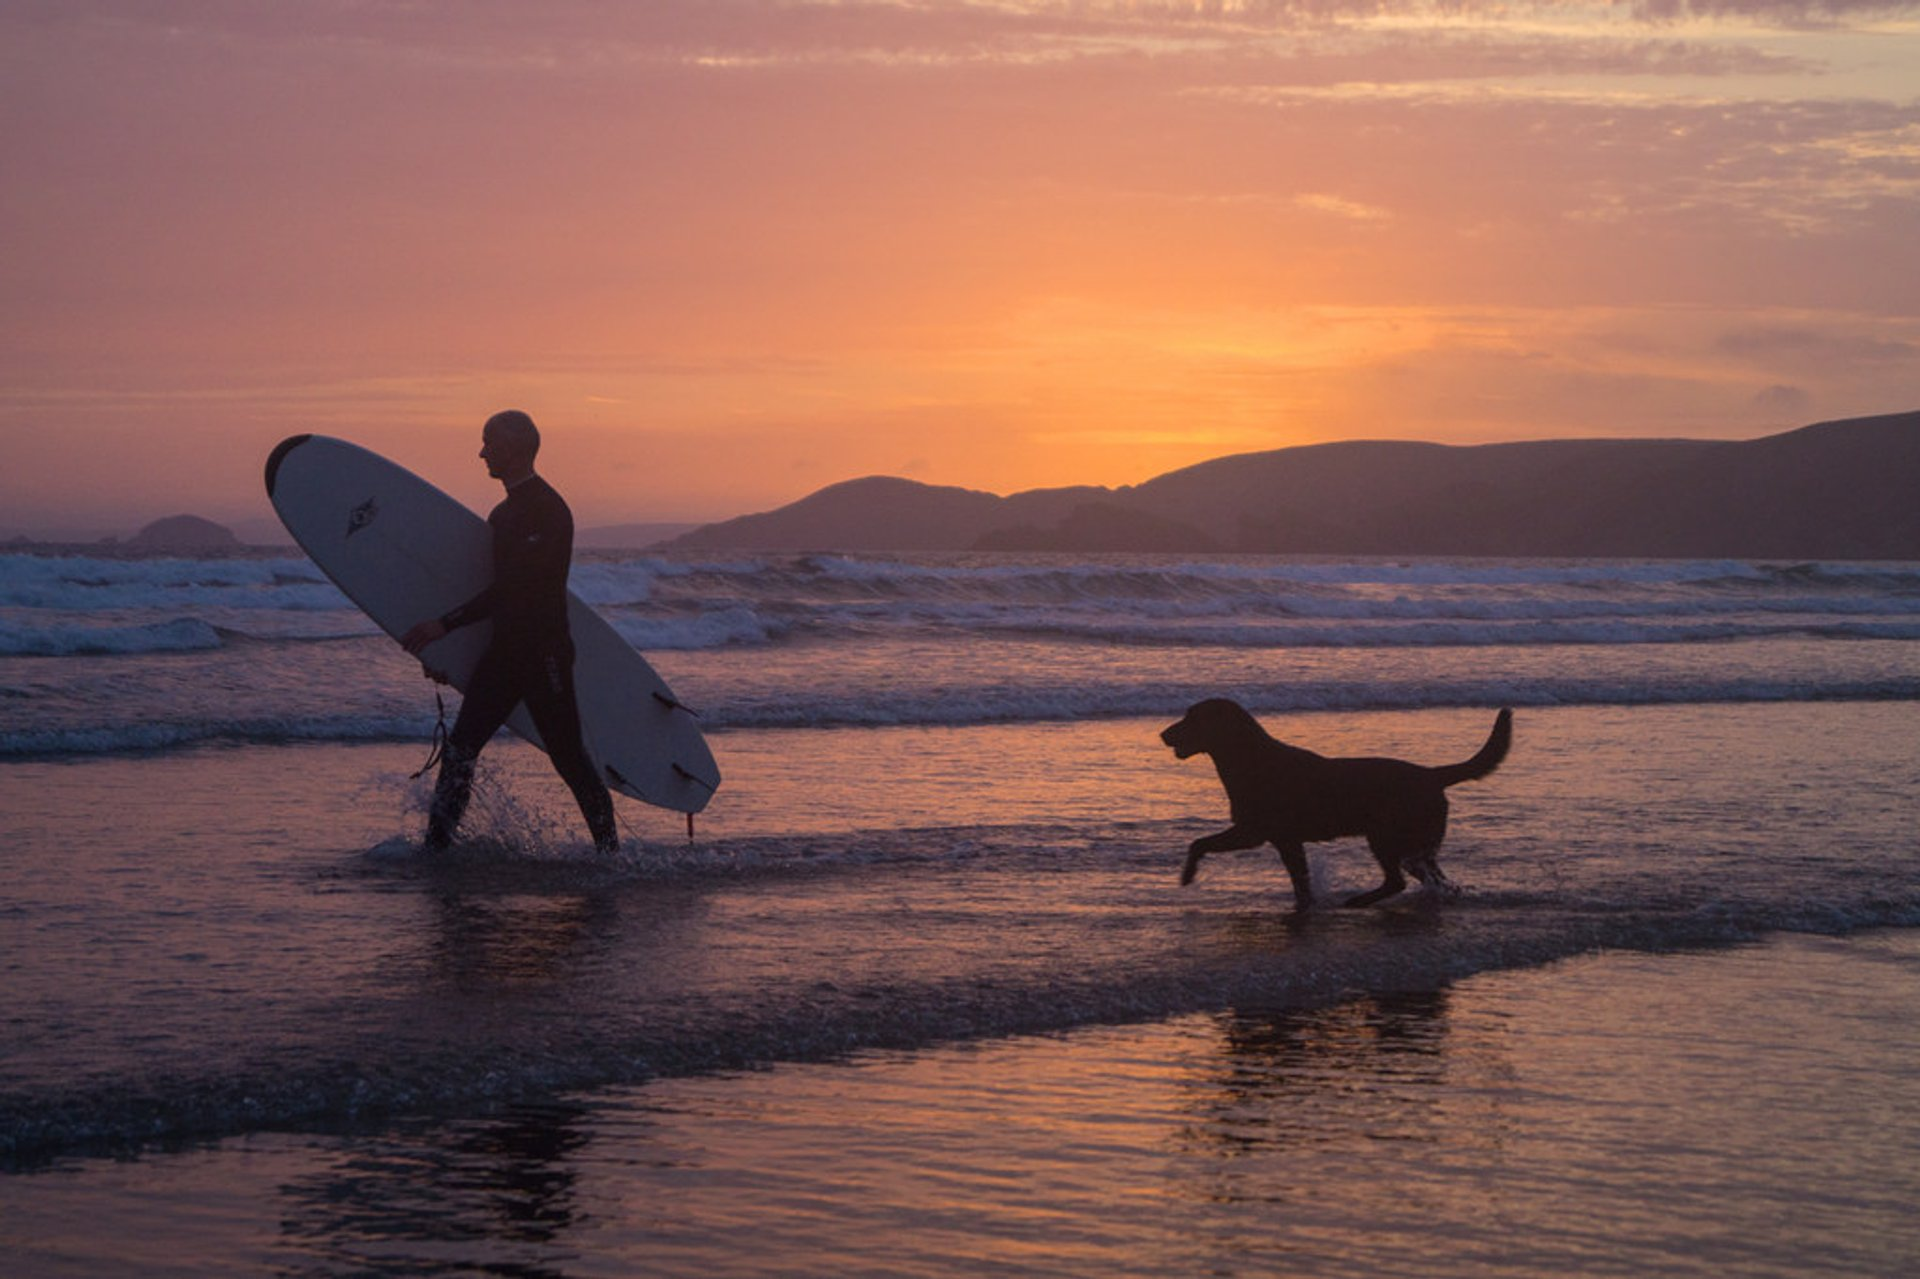 Micky (surfer) and his dog Jake (wannabe surfer), Newgale beach, Pembrokeshire, Wales, UK 2020